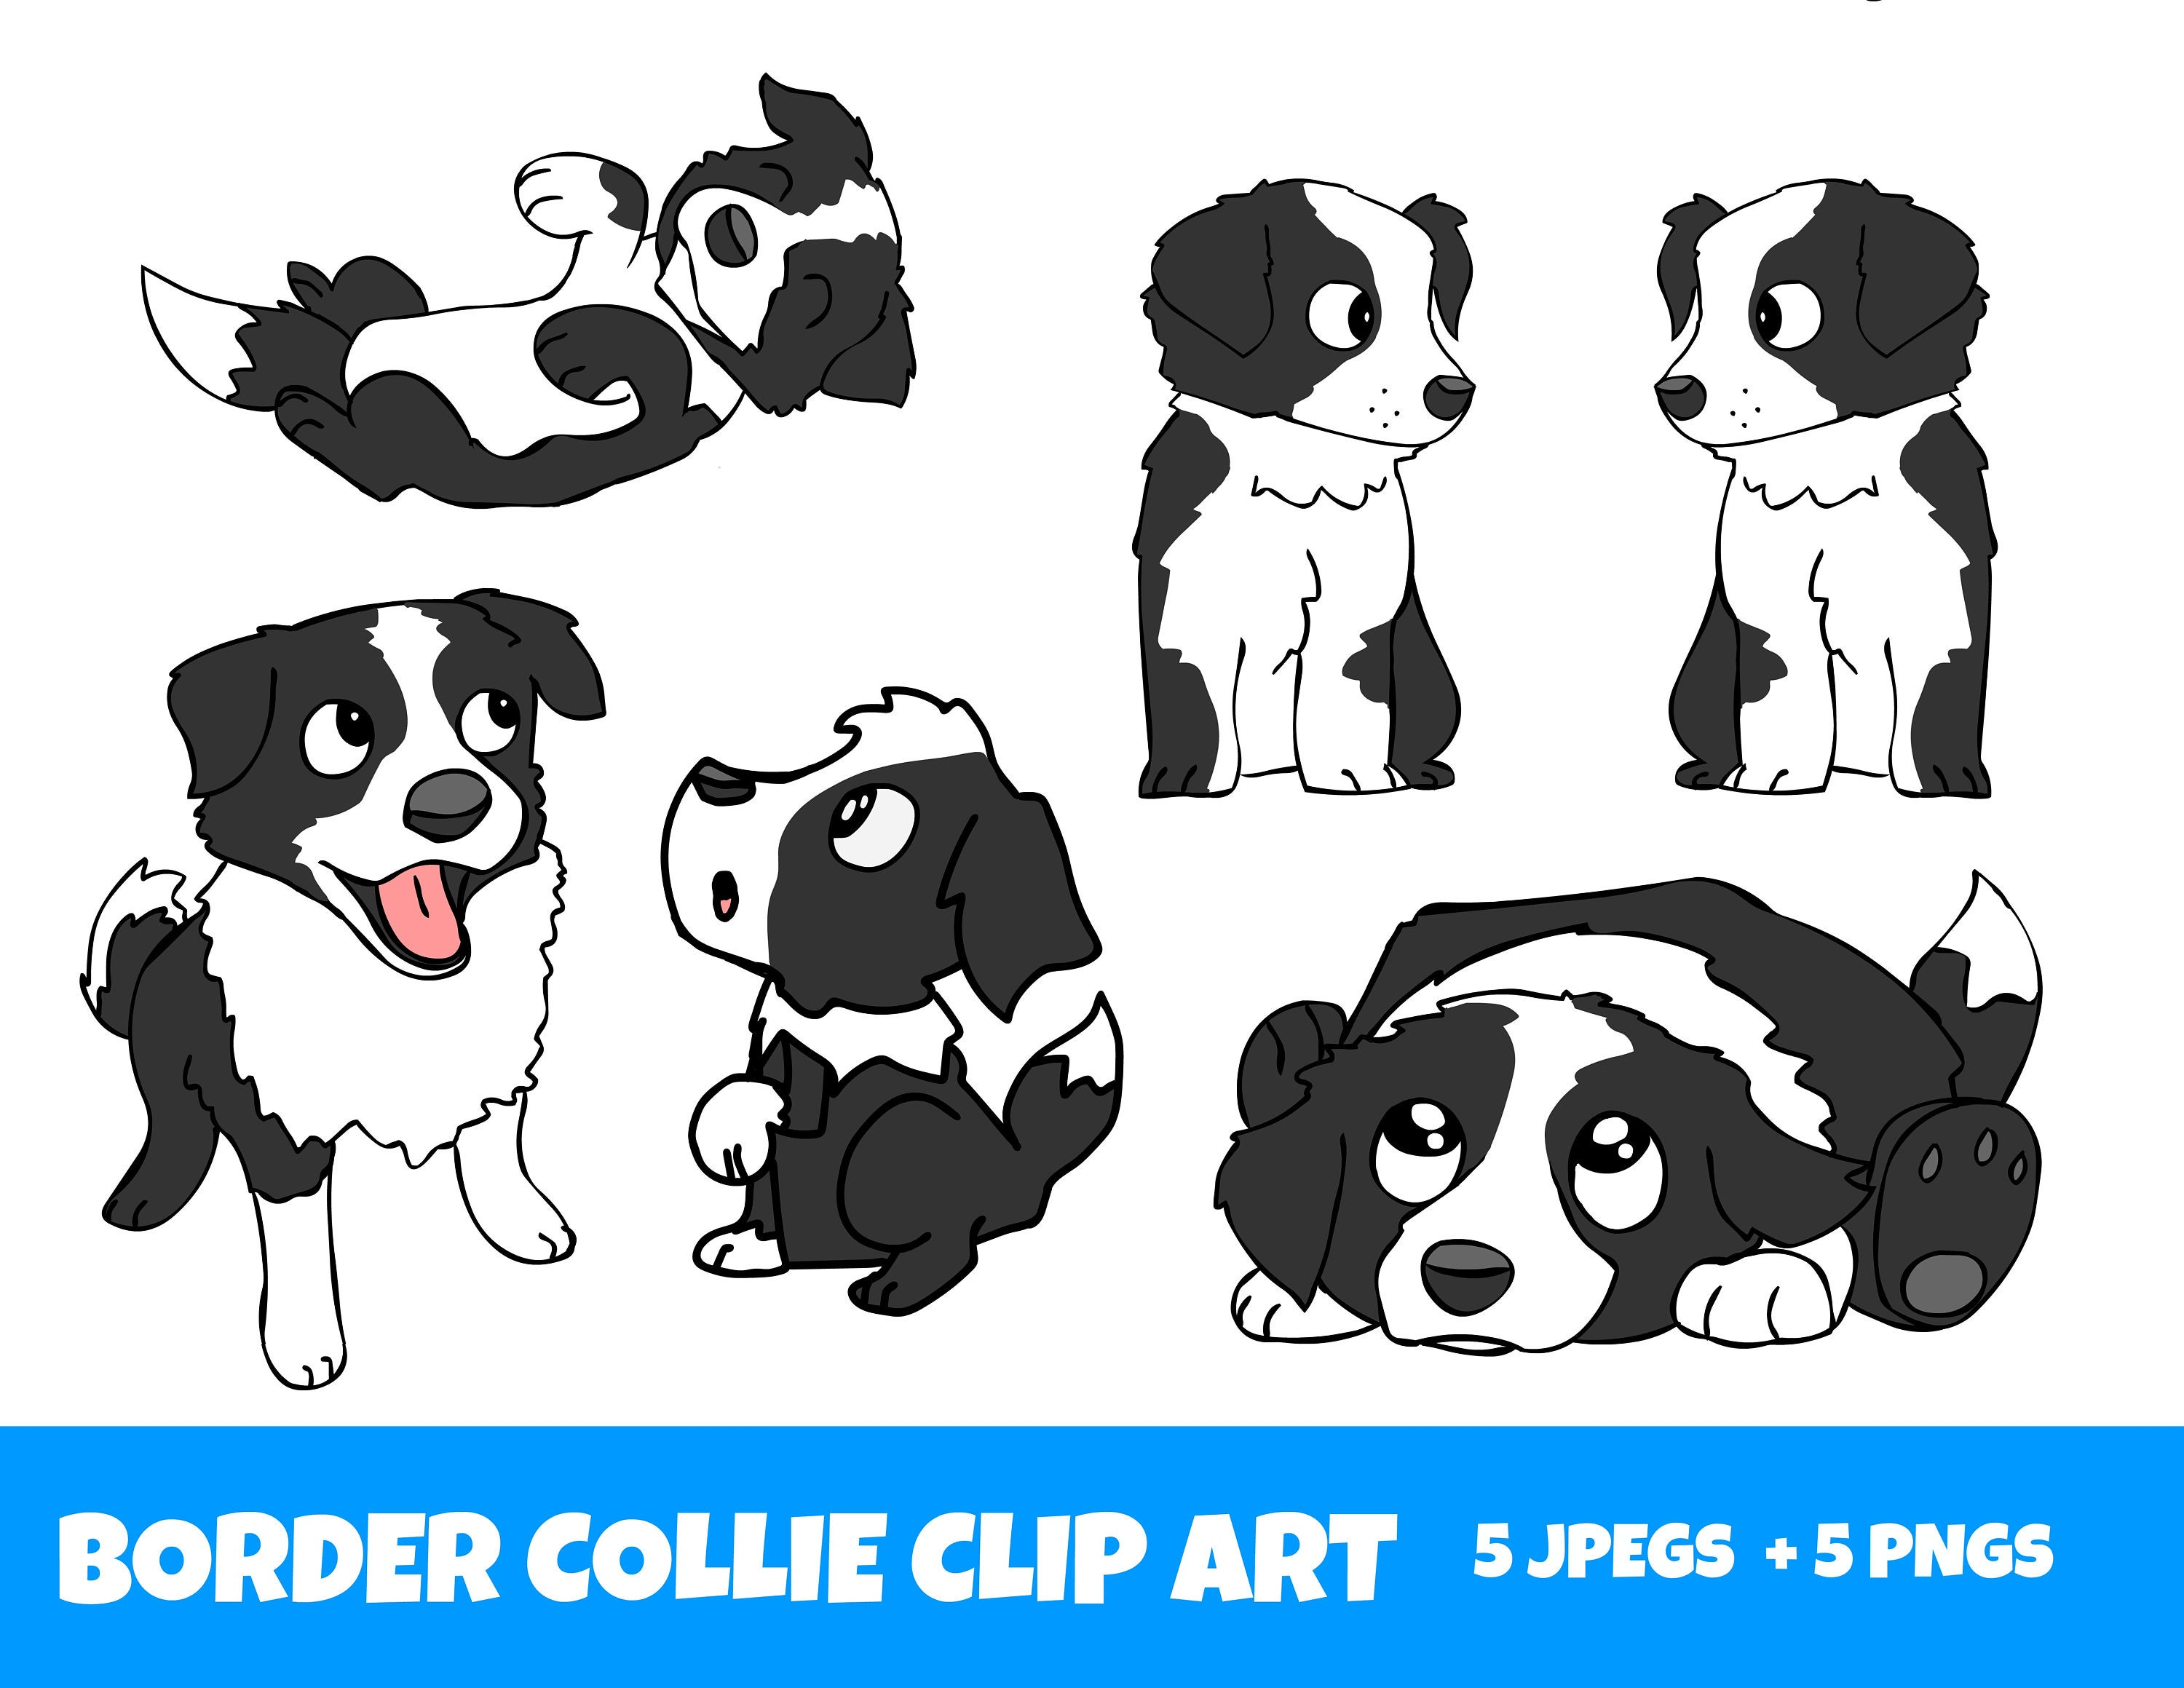 Border Collie Clipart, Cartoon Art Sheep Dog, Commercial Use OK, JPEG and  PNG.